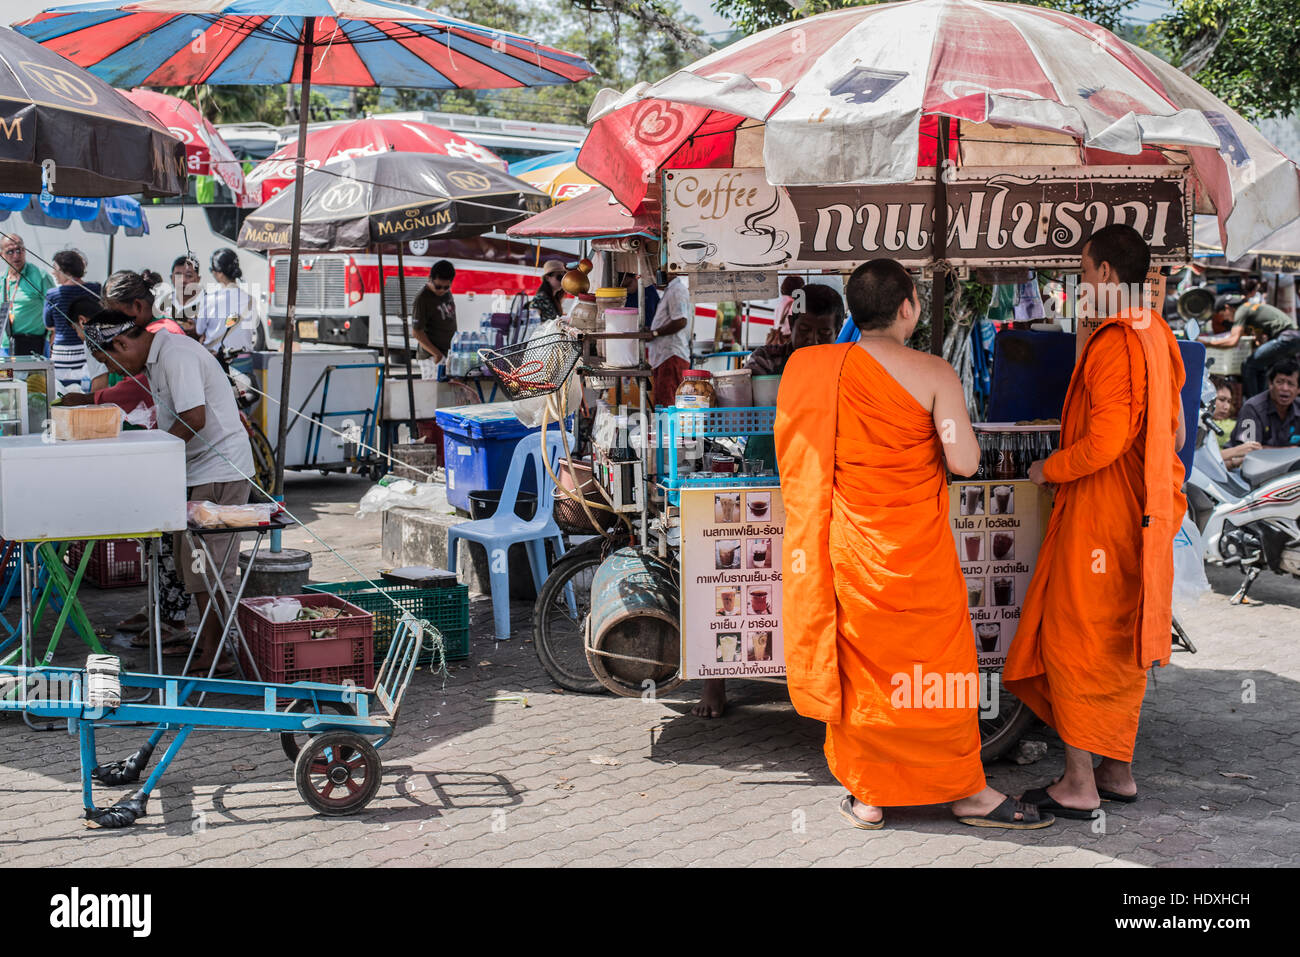 Unidentified monks receive food offering from people on November 24, 2014 in Phuket, Thailand. Offering food is - Stock Image